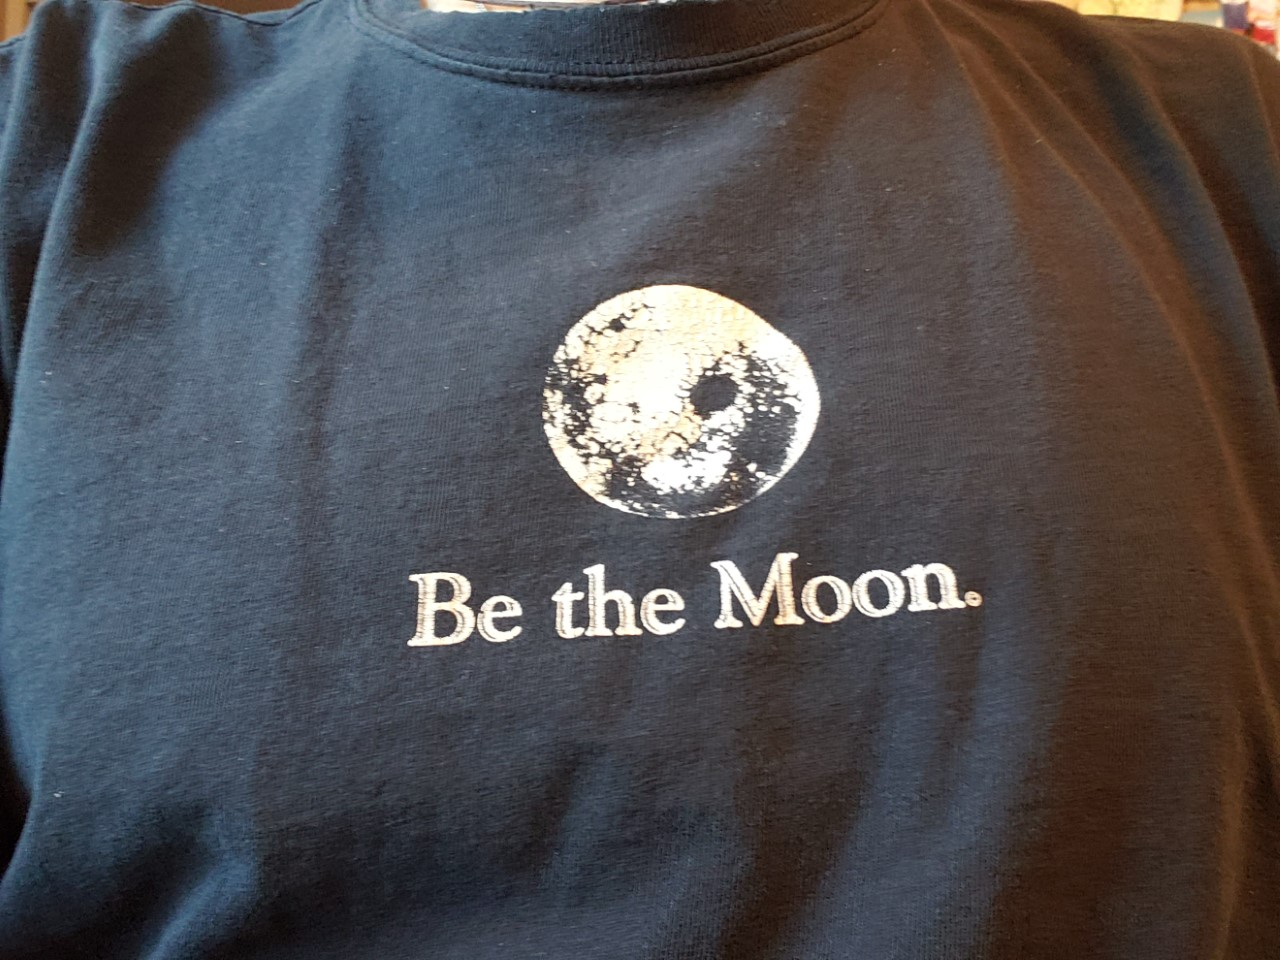 Lent 4: Be The Moon